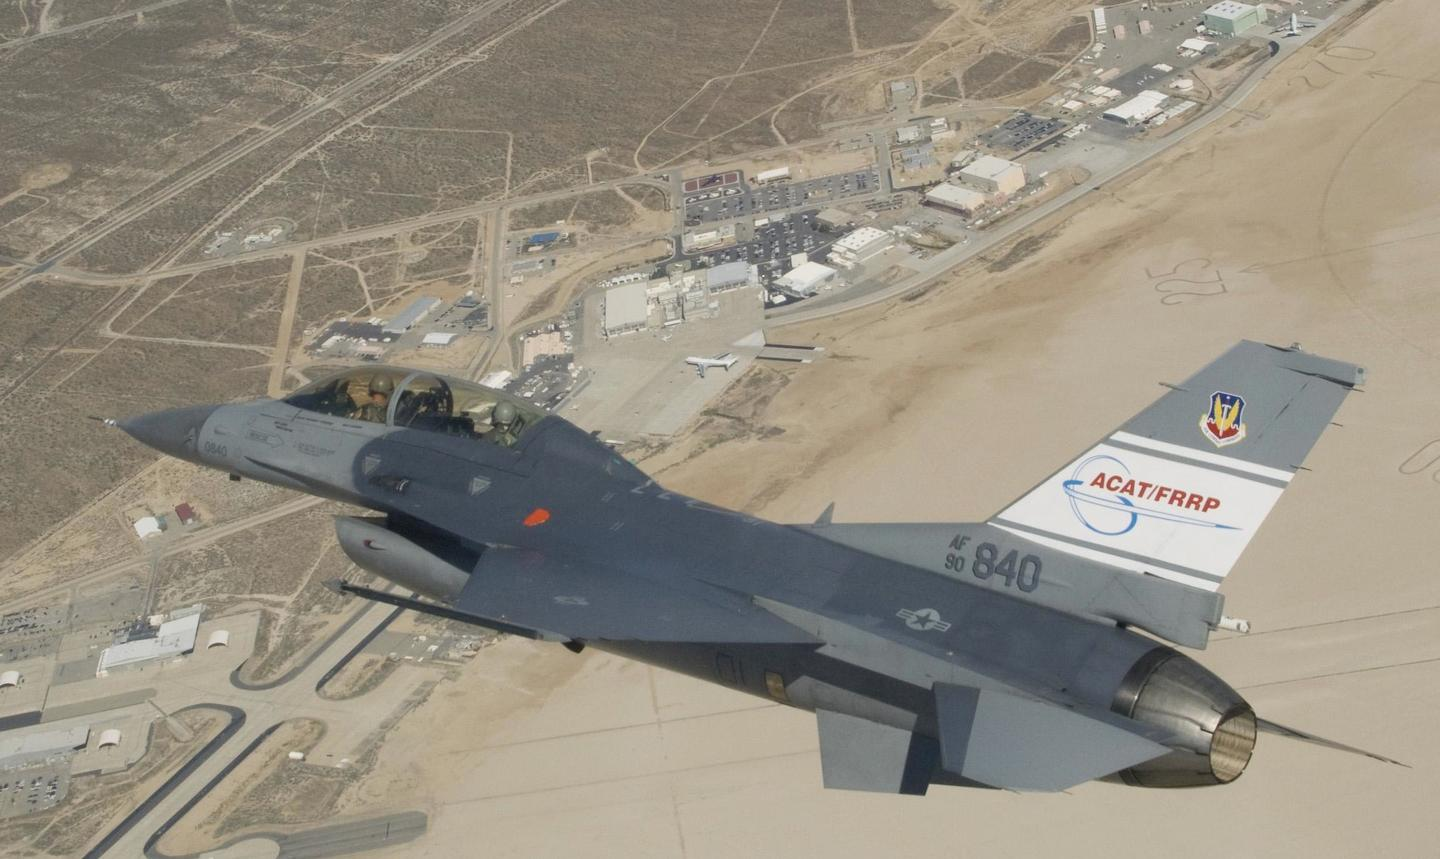 A USAF F-16D banking over NASA's Dryden facility during testing in 2009 (Photo: NASA, Jim Ross)